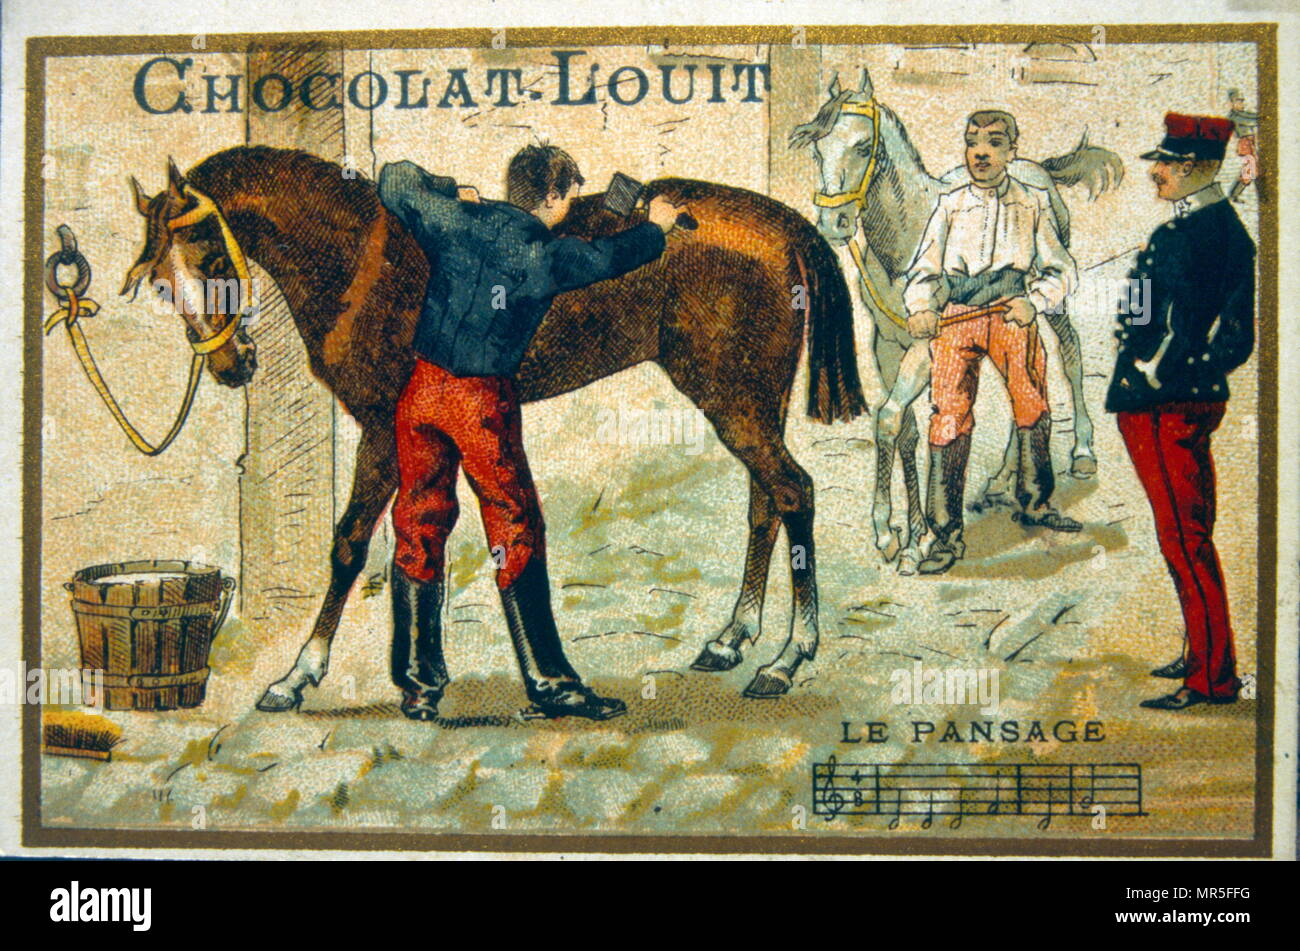 Chromolithograph from a chocolate wrapper, circa 1900, depicting French cavalry grooms attending horses in stables - Stock Image